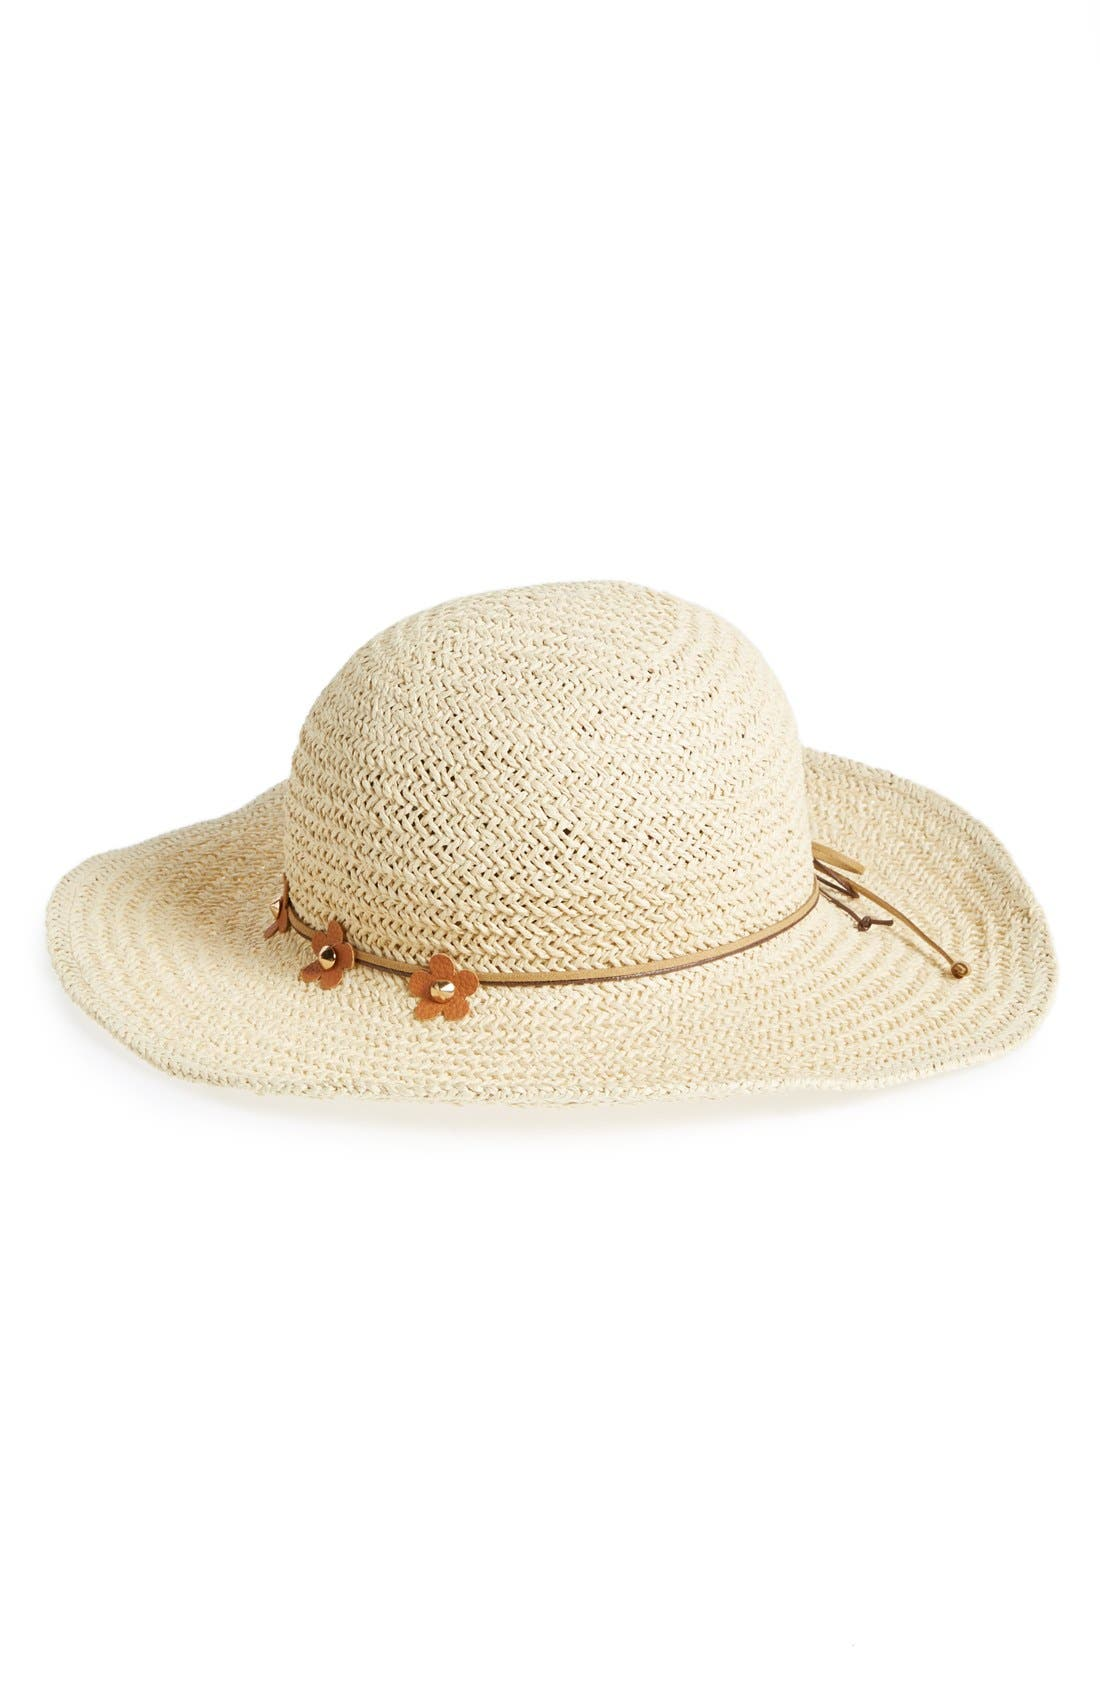 Alternate Image 1 Selected - David & Young Floppy Straw Hat with Floral Band